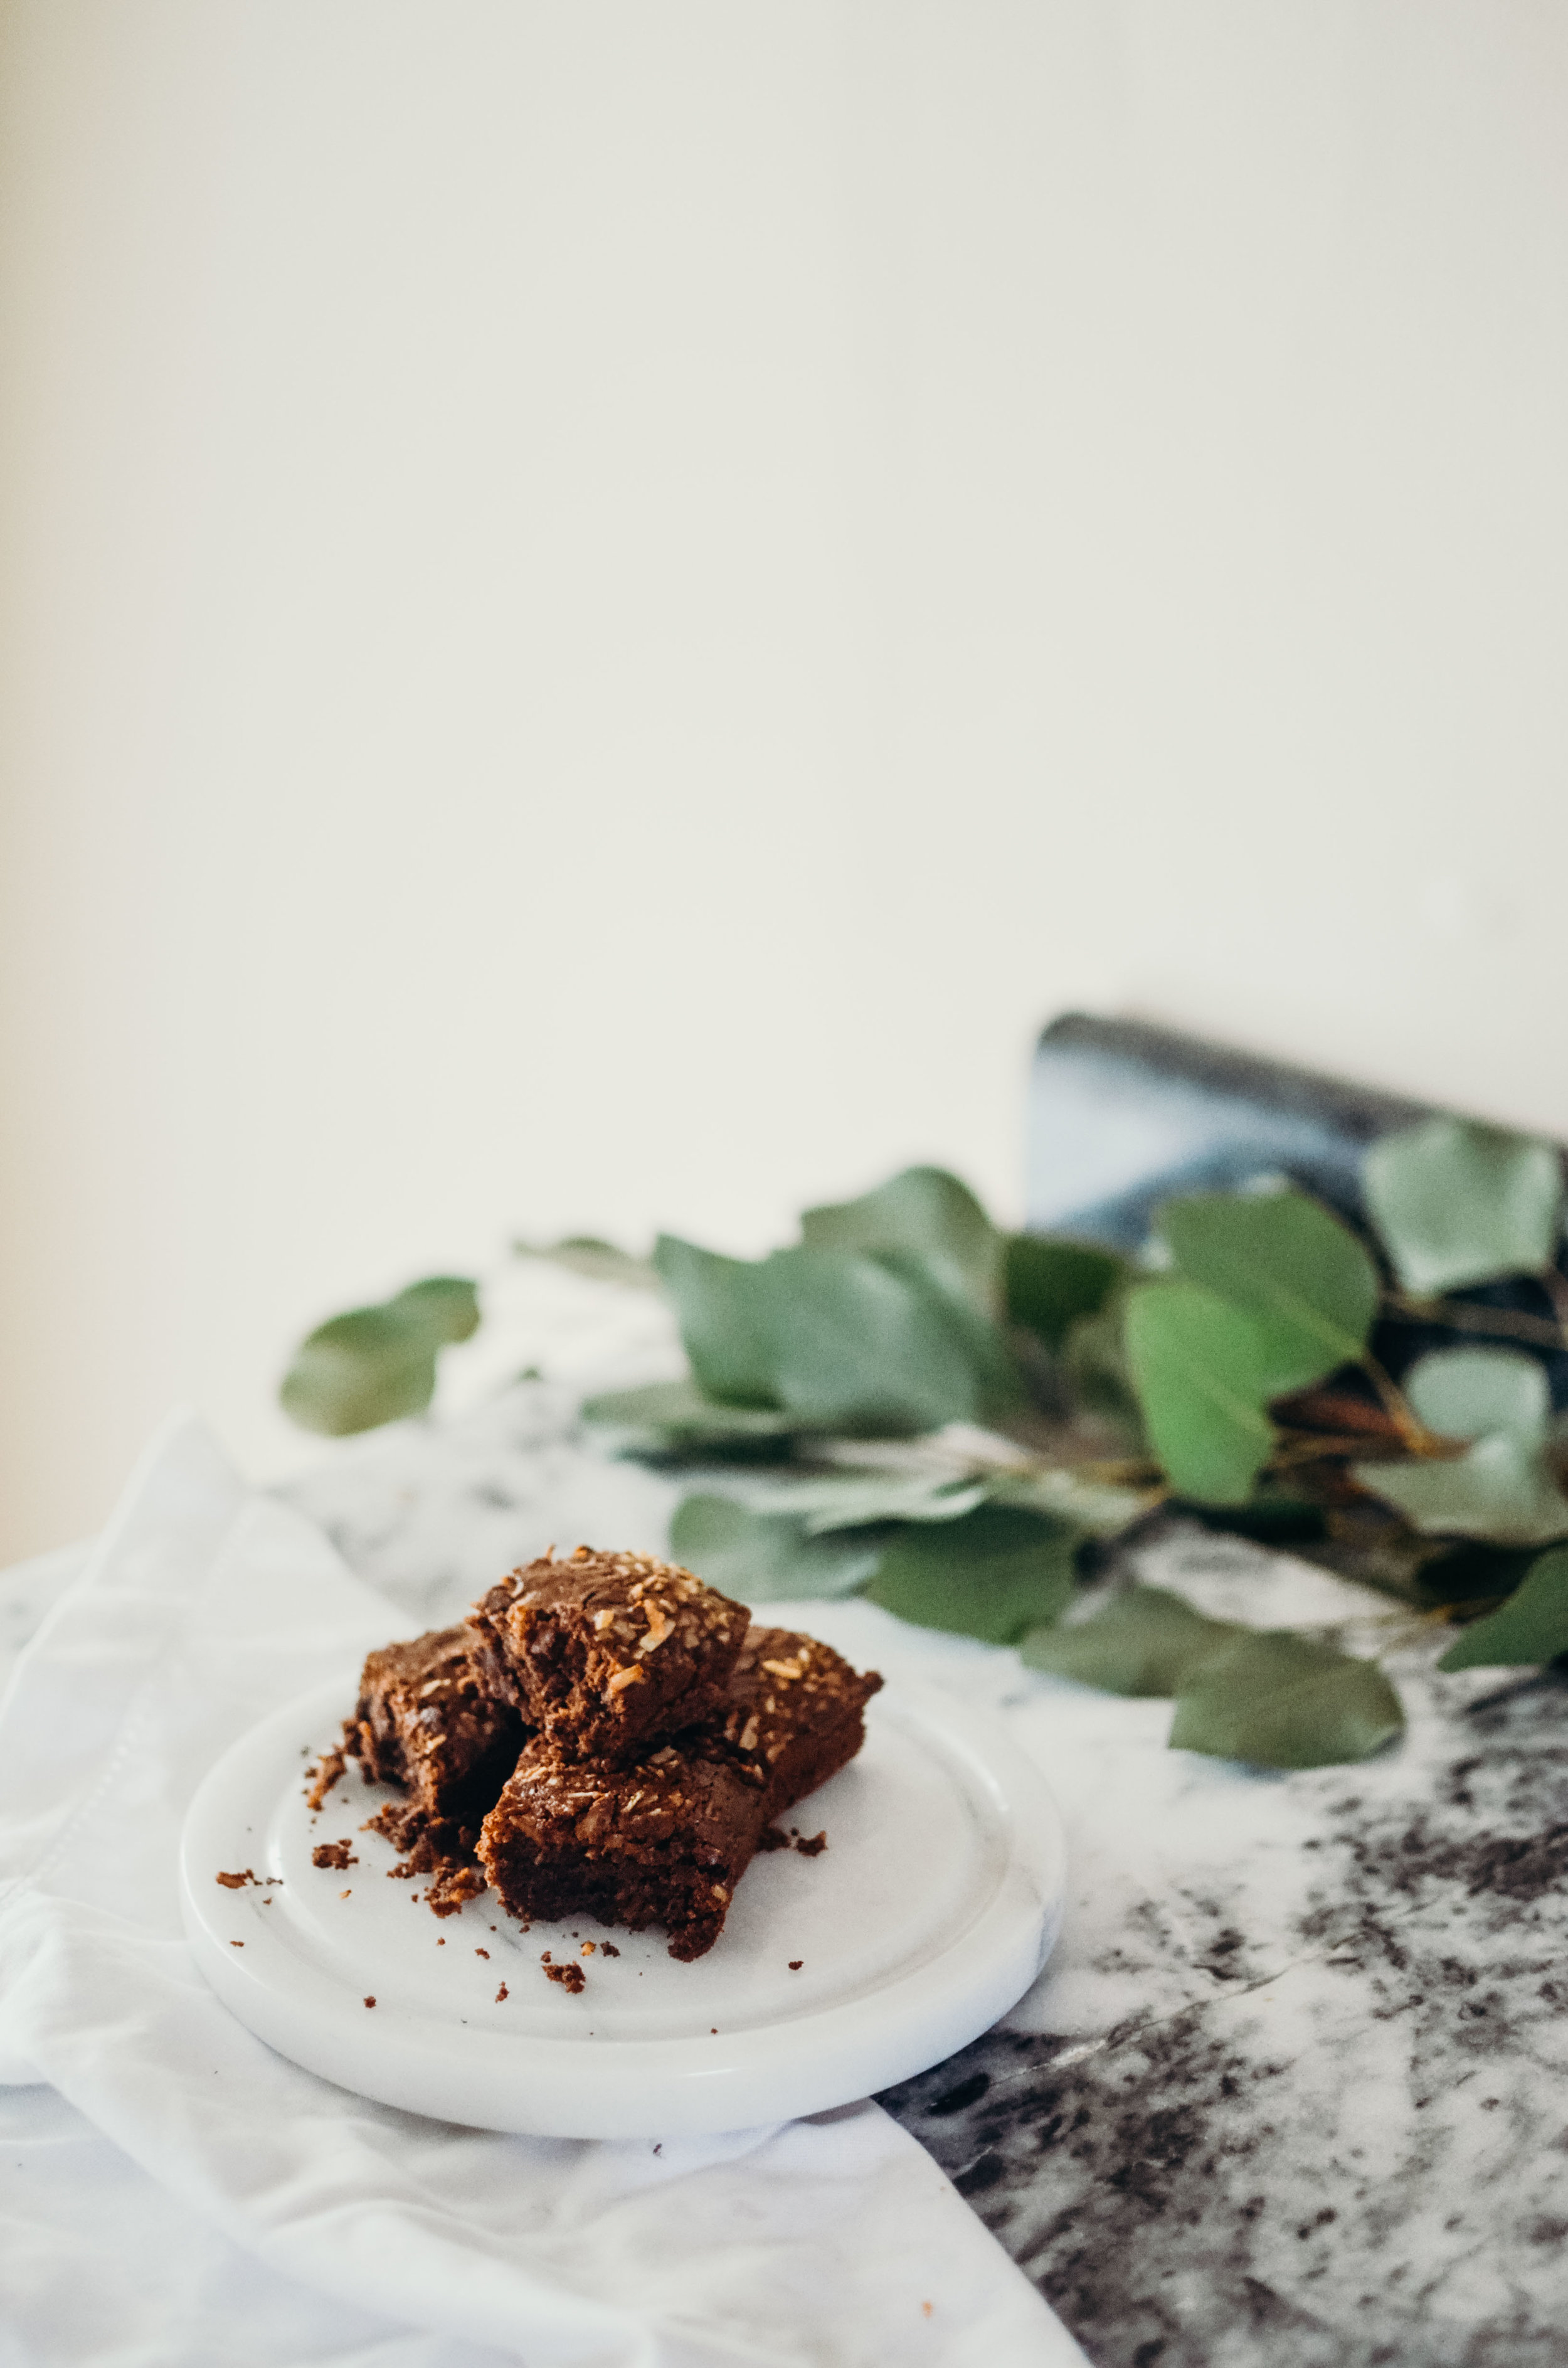 Wendling_Boyd_Coconut_Maple_Brownies-4.jpg